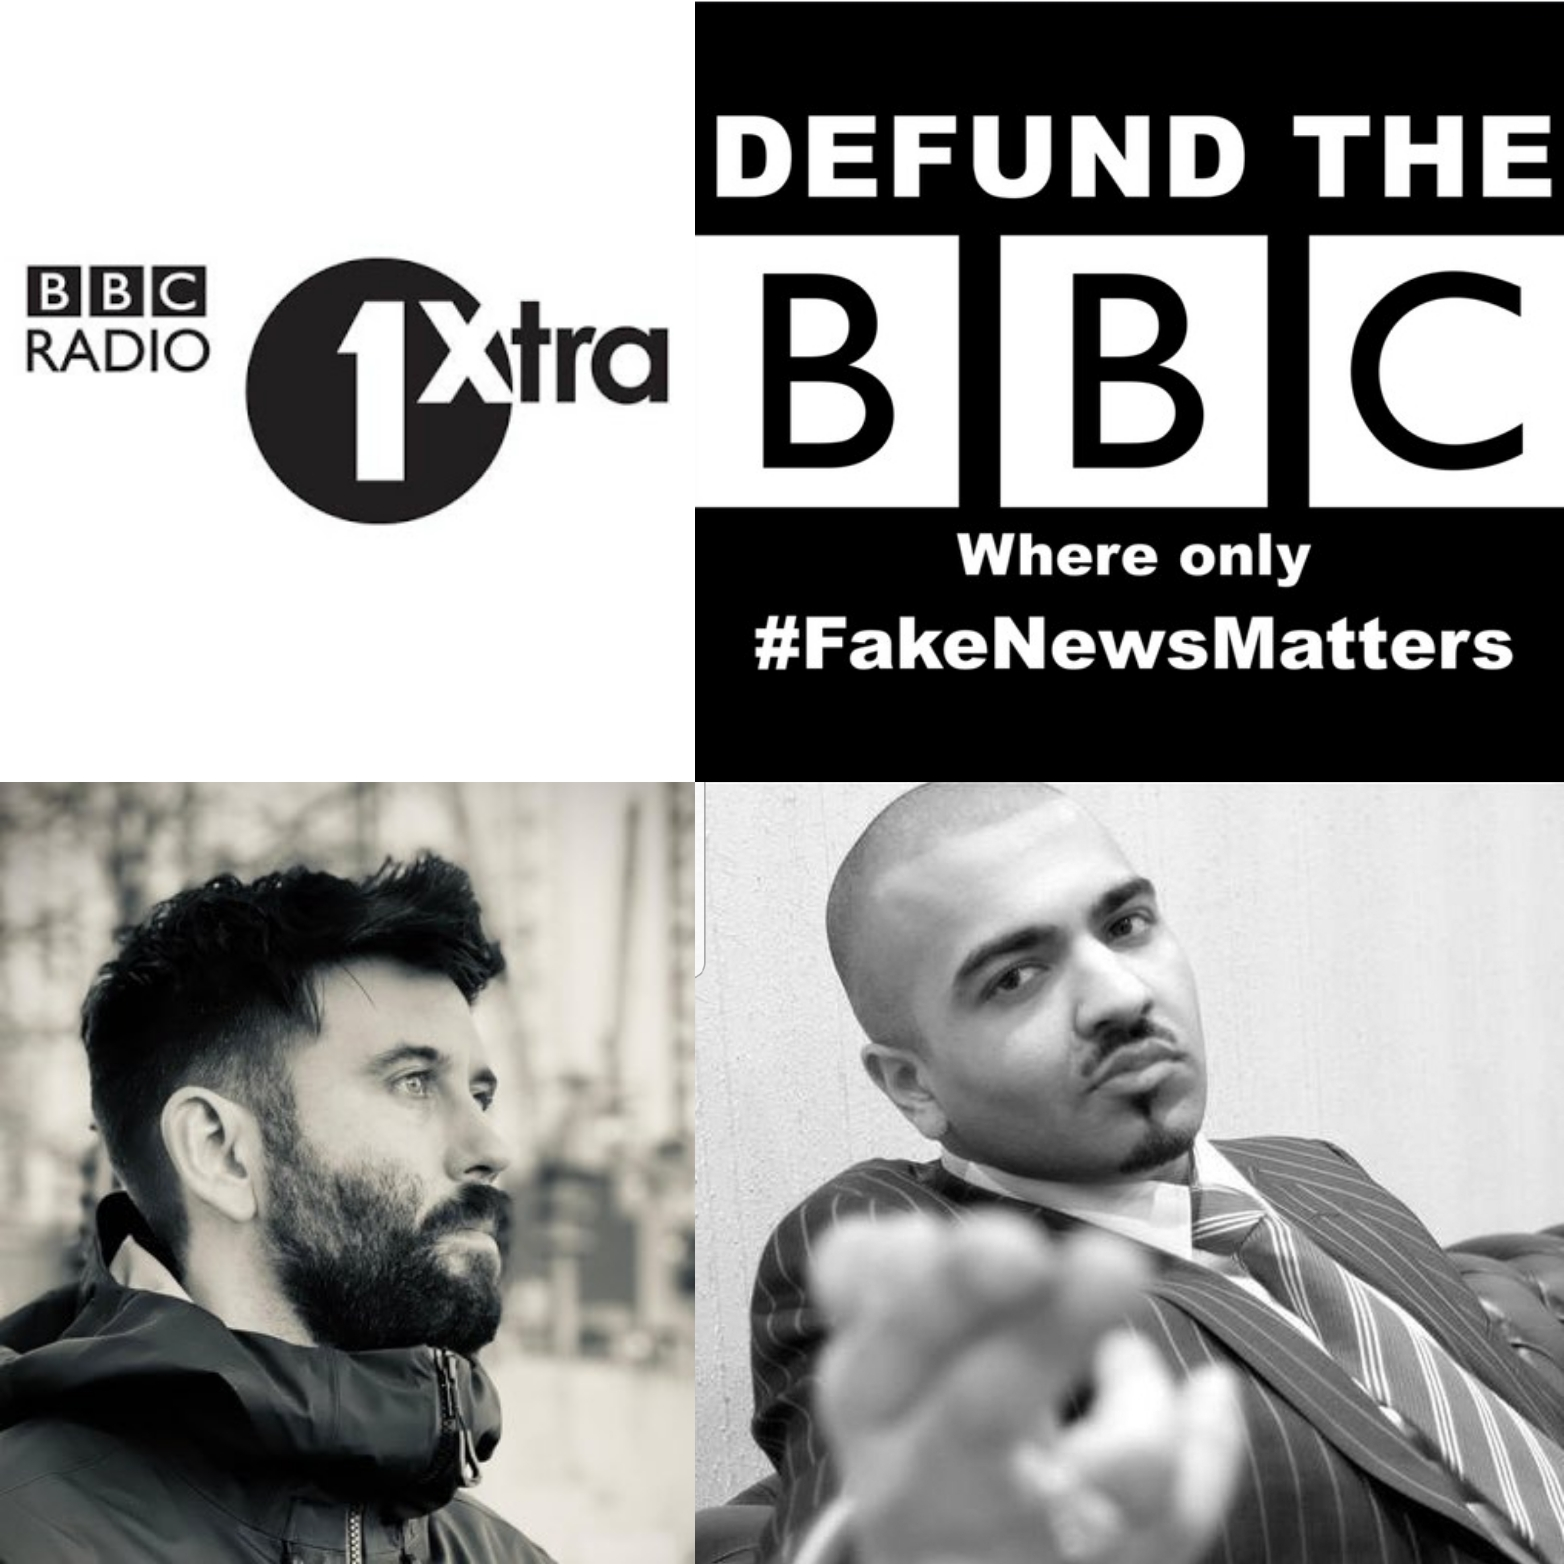 Rancid Reporter Rat Myles Bonnar Went On BBC 1Xtra (Black Music) Podcast To Justify Accusations That He Racially Targeted Innocent BAME Male Dating Coach Adnan Ahmed (Addy Agame Proven Innocent In High Court)